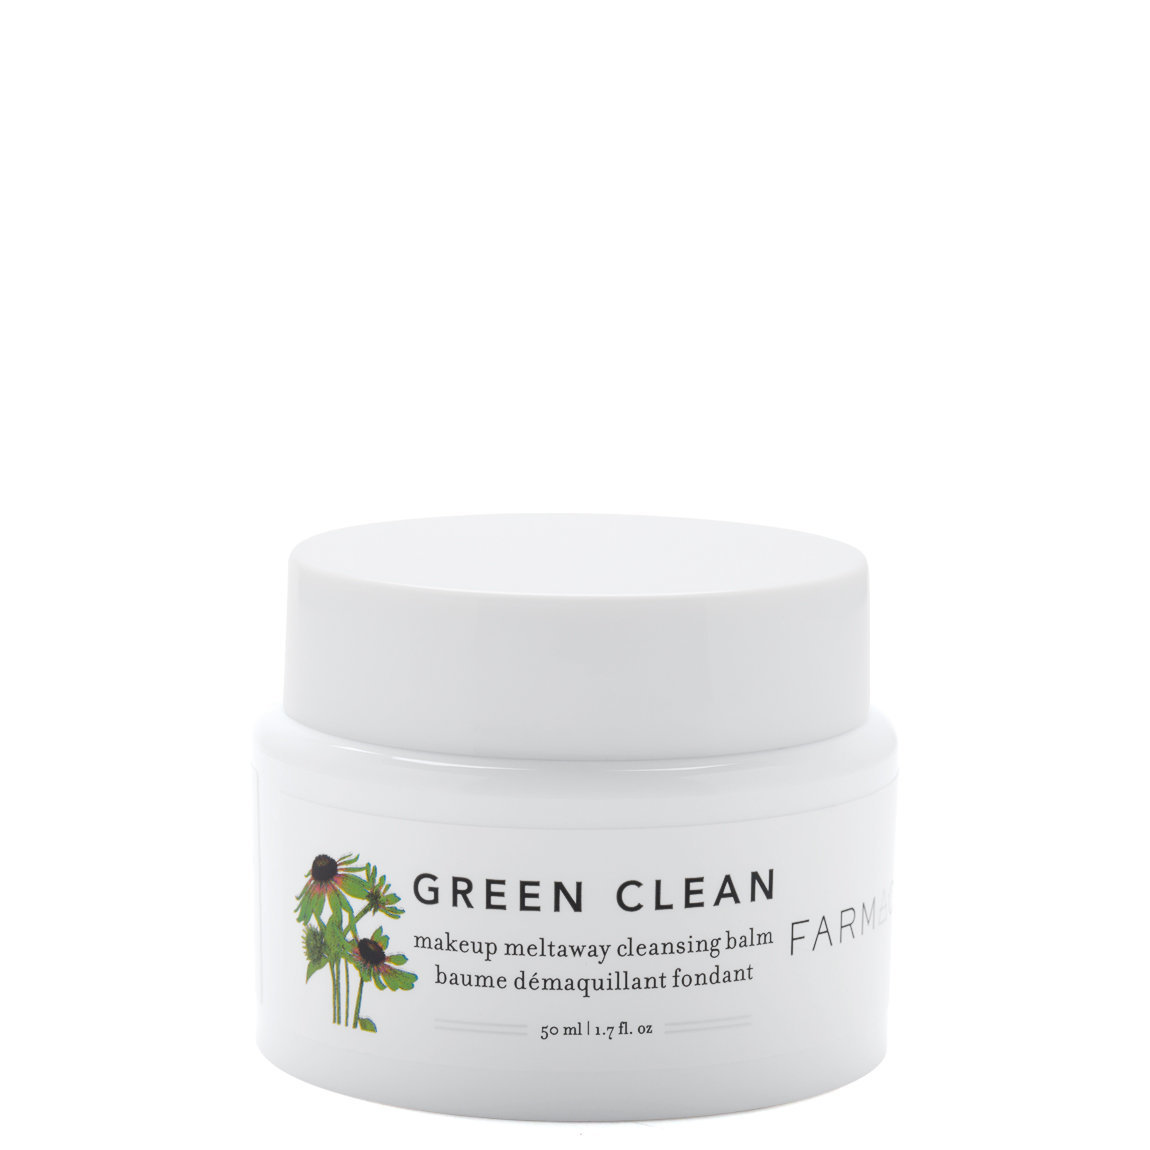 Farmacy Green Clean Makeup Meltaway Cleansing Balm 1.7 oz product smear.